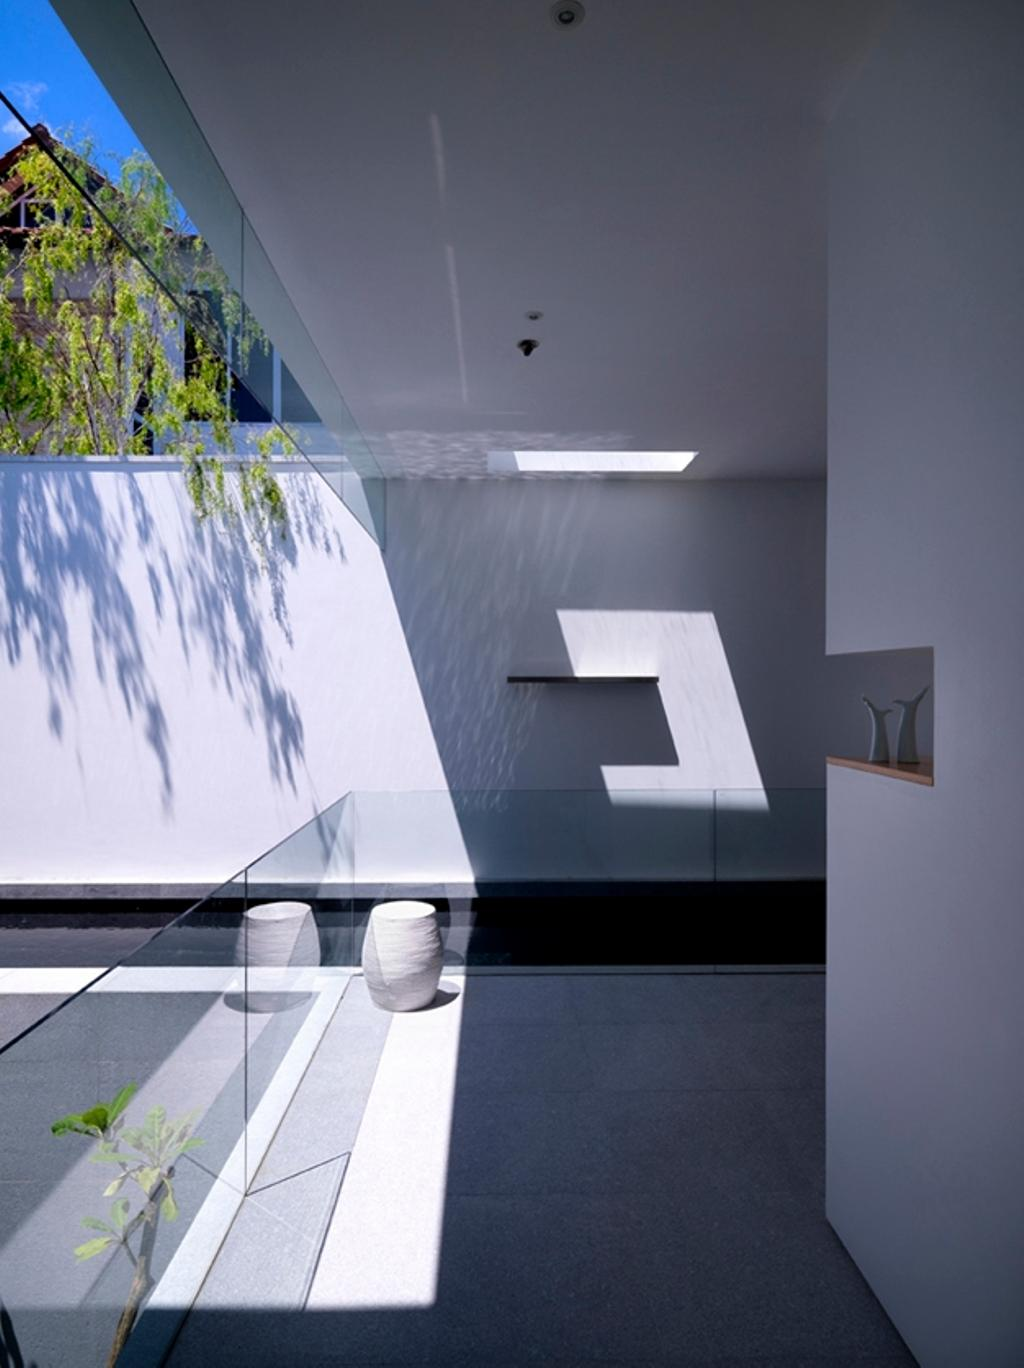 Modern, Landed, Ontario, Architect, Ministry of Design, Small Pond, White Walls, Glass Barricade, White Ceiling